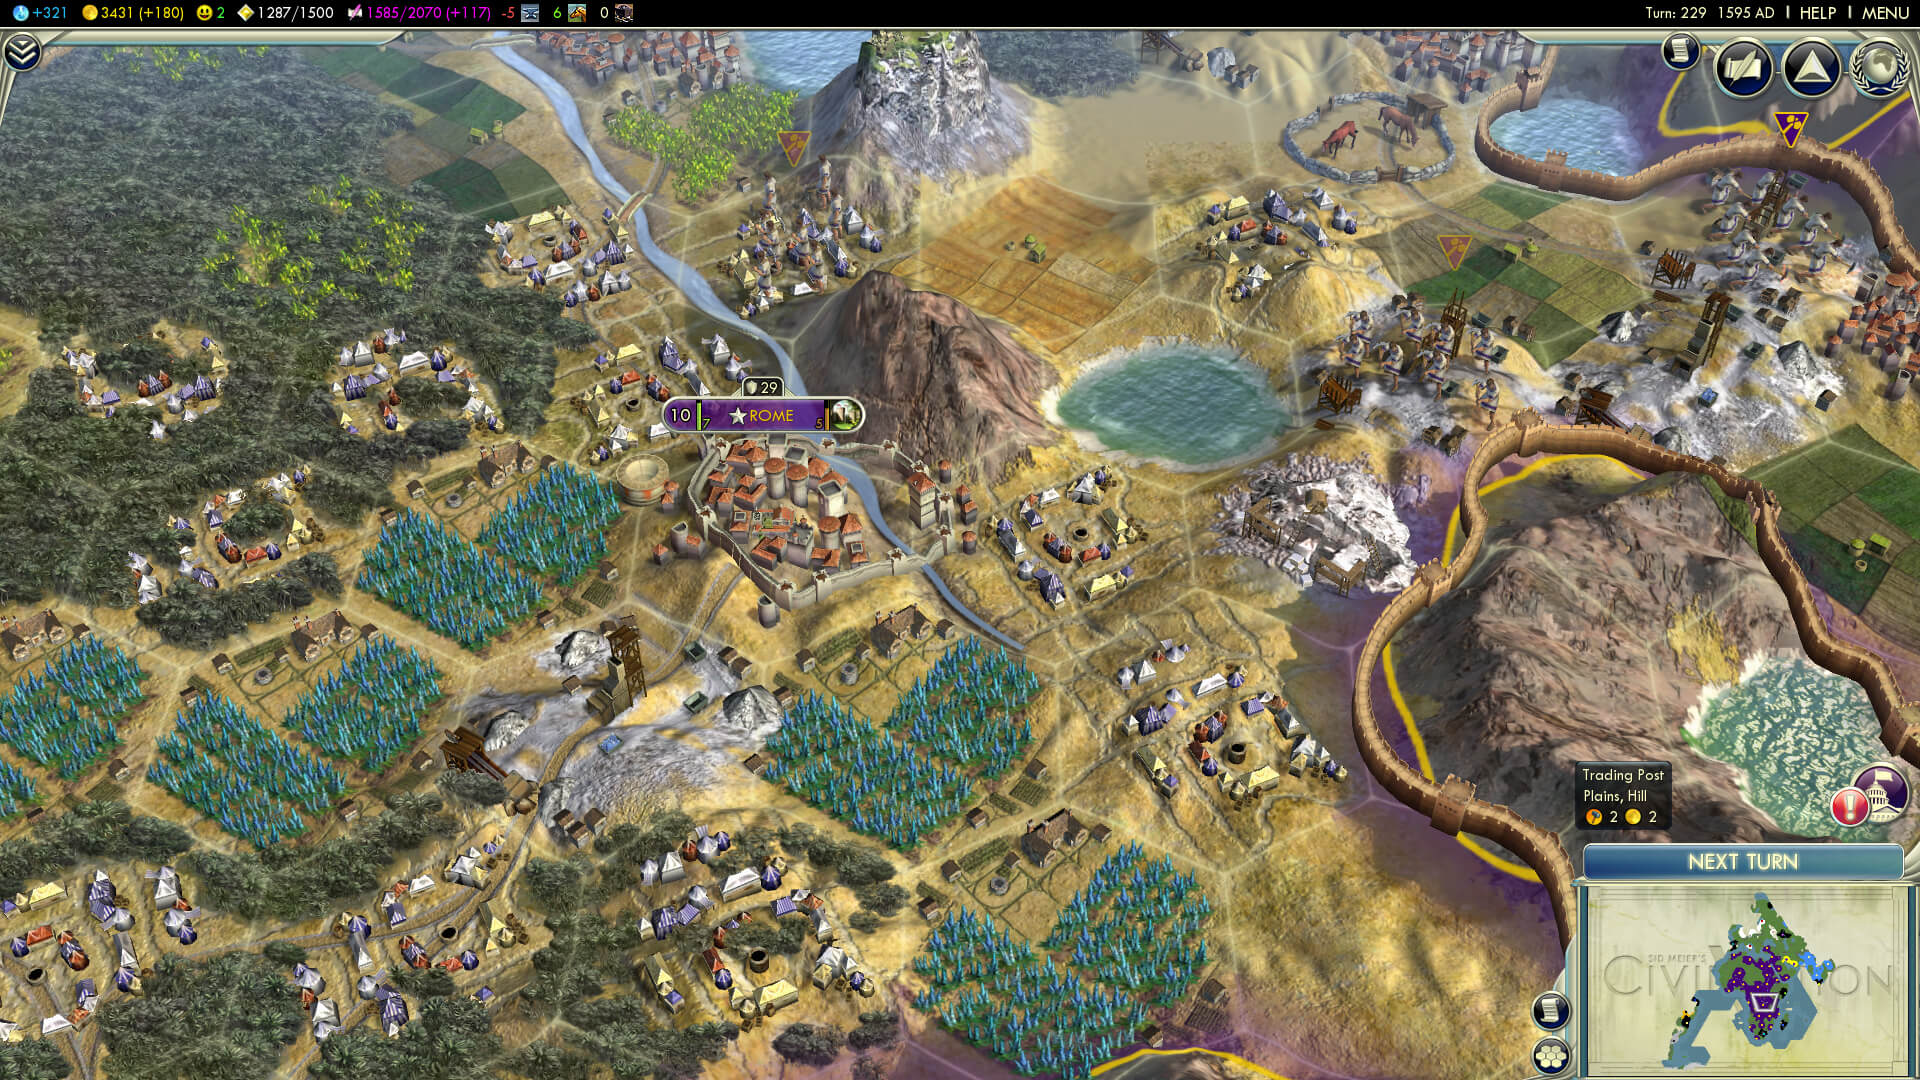 Sid Meier's Civilization 5 Cheats and Trainers - Video Games